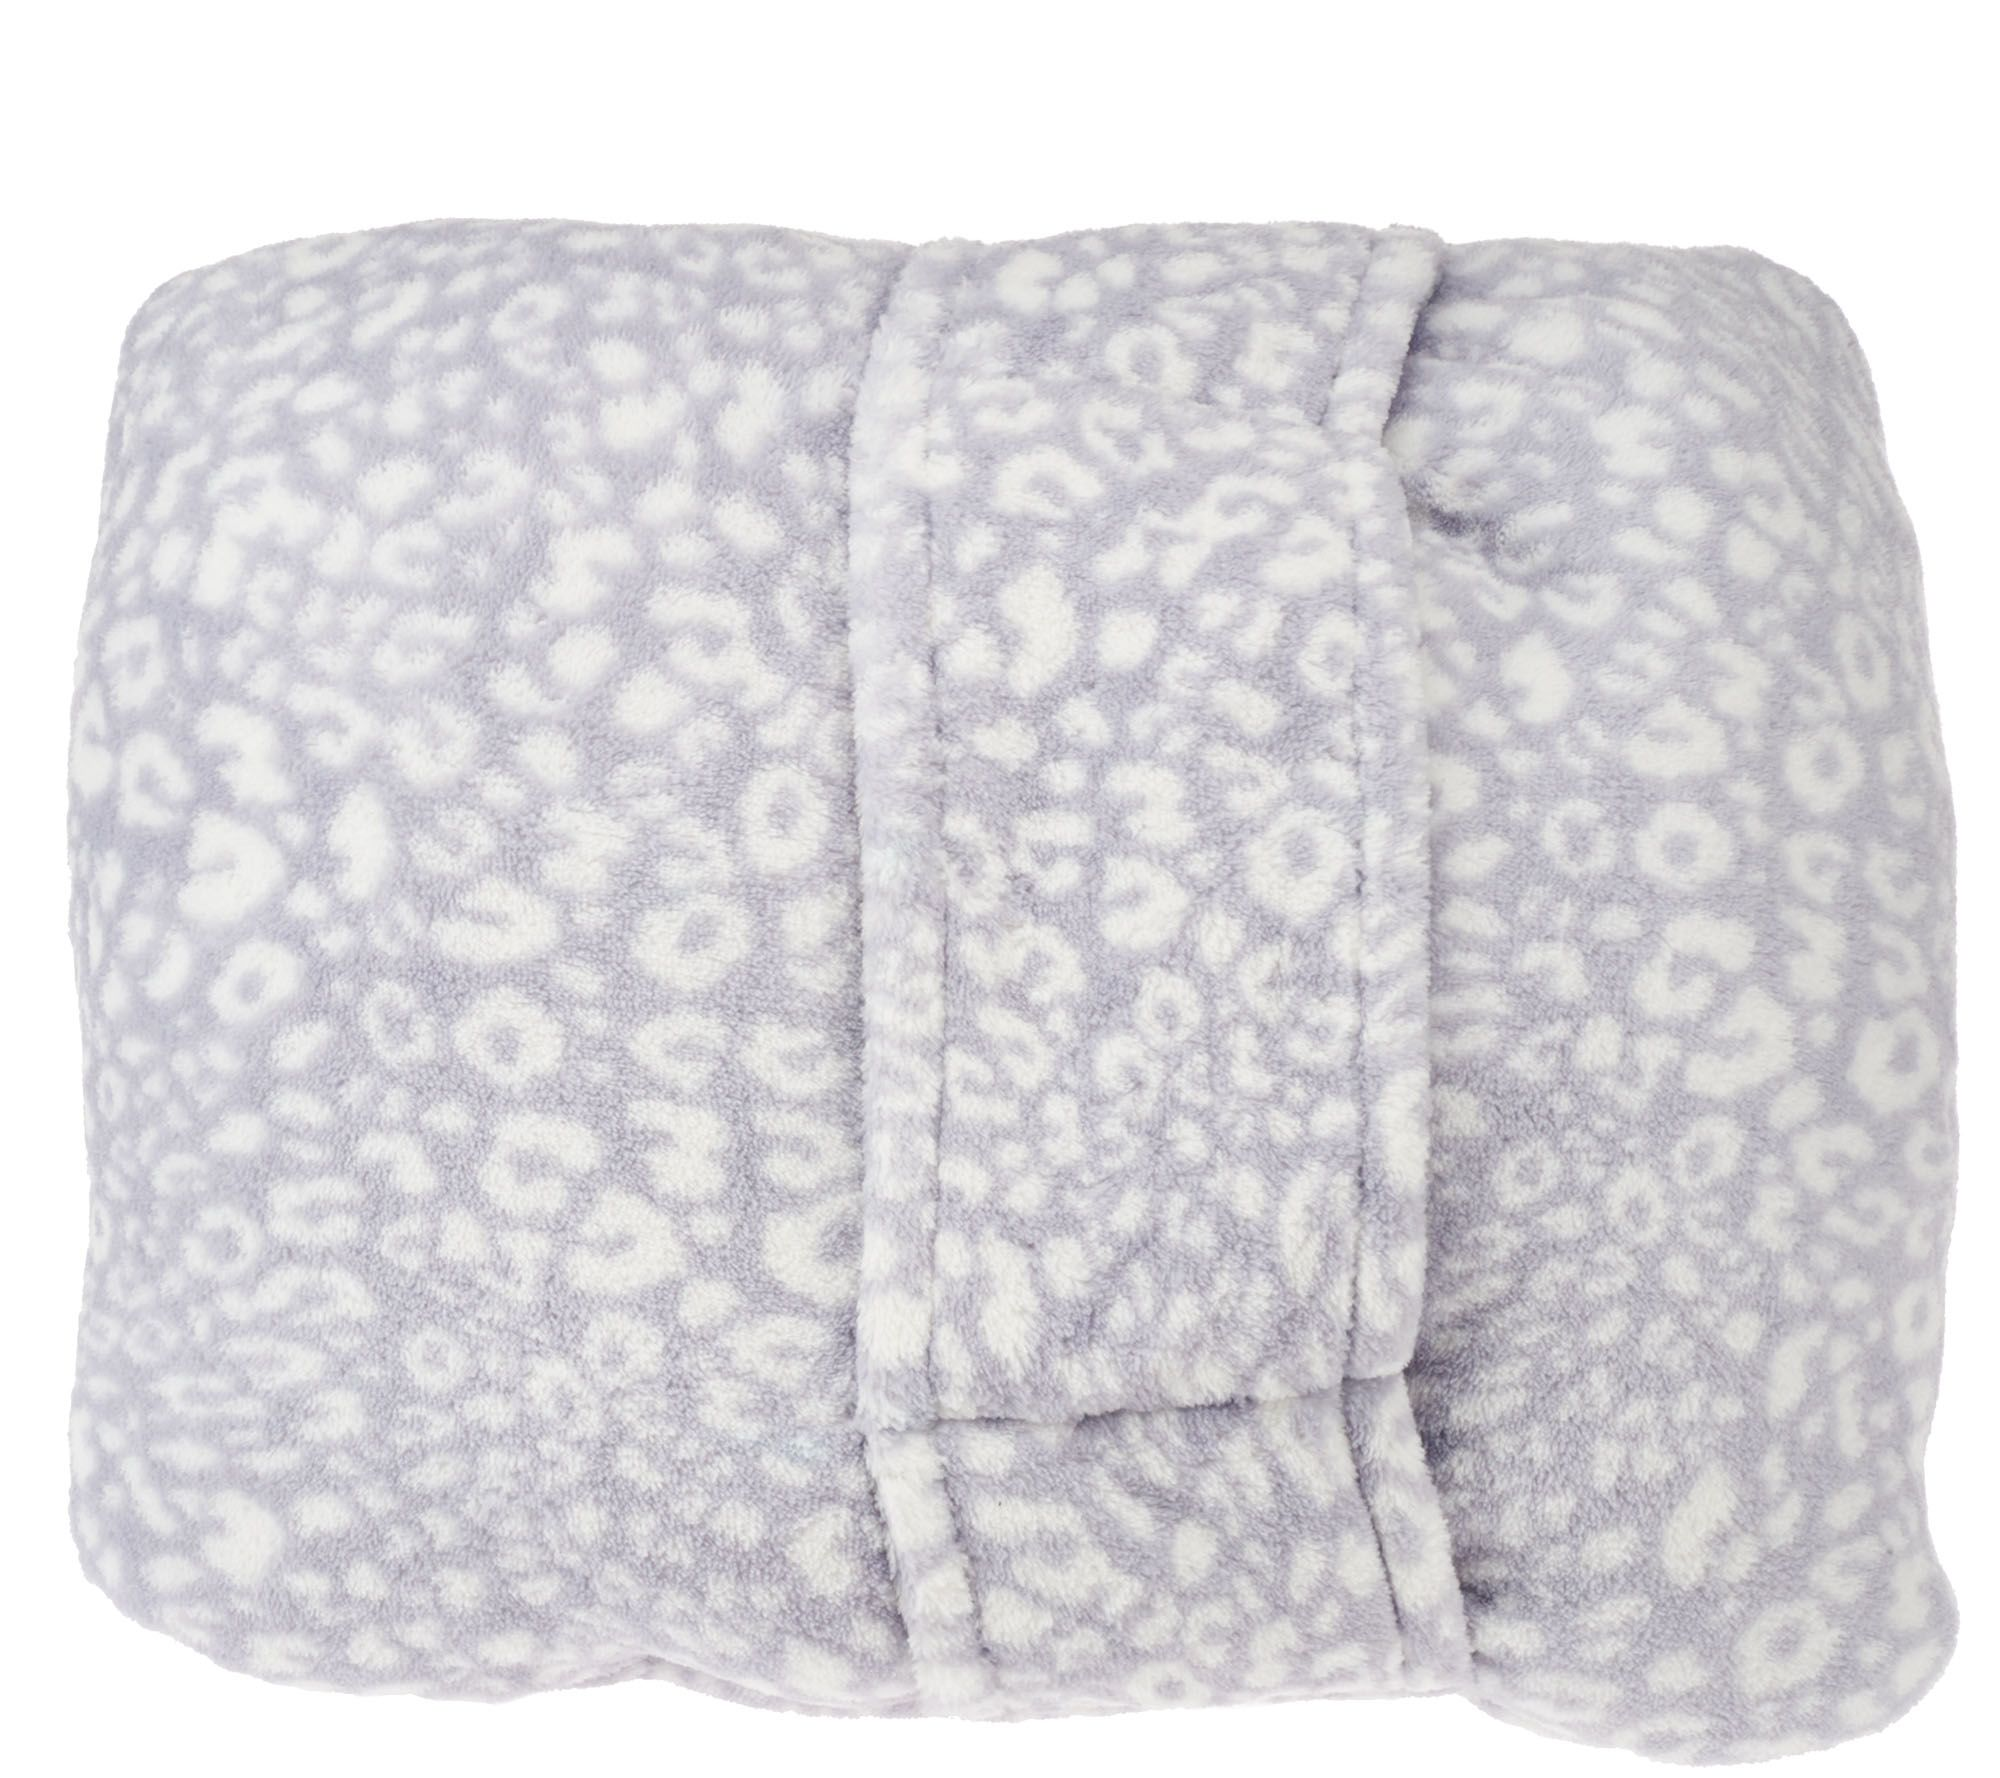 Quilted Throw Pillows Patterns : Vera Bradley Fleece Travel Blanket/Pillow - Page 1 ? QVC.com